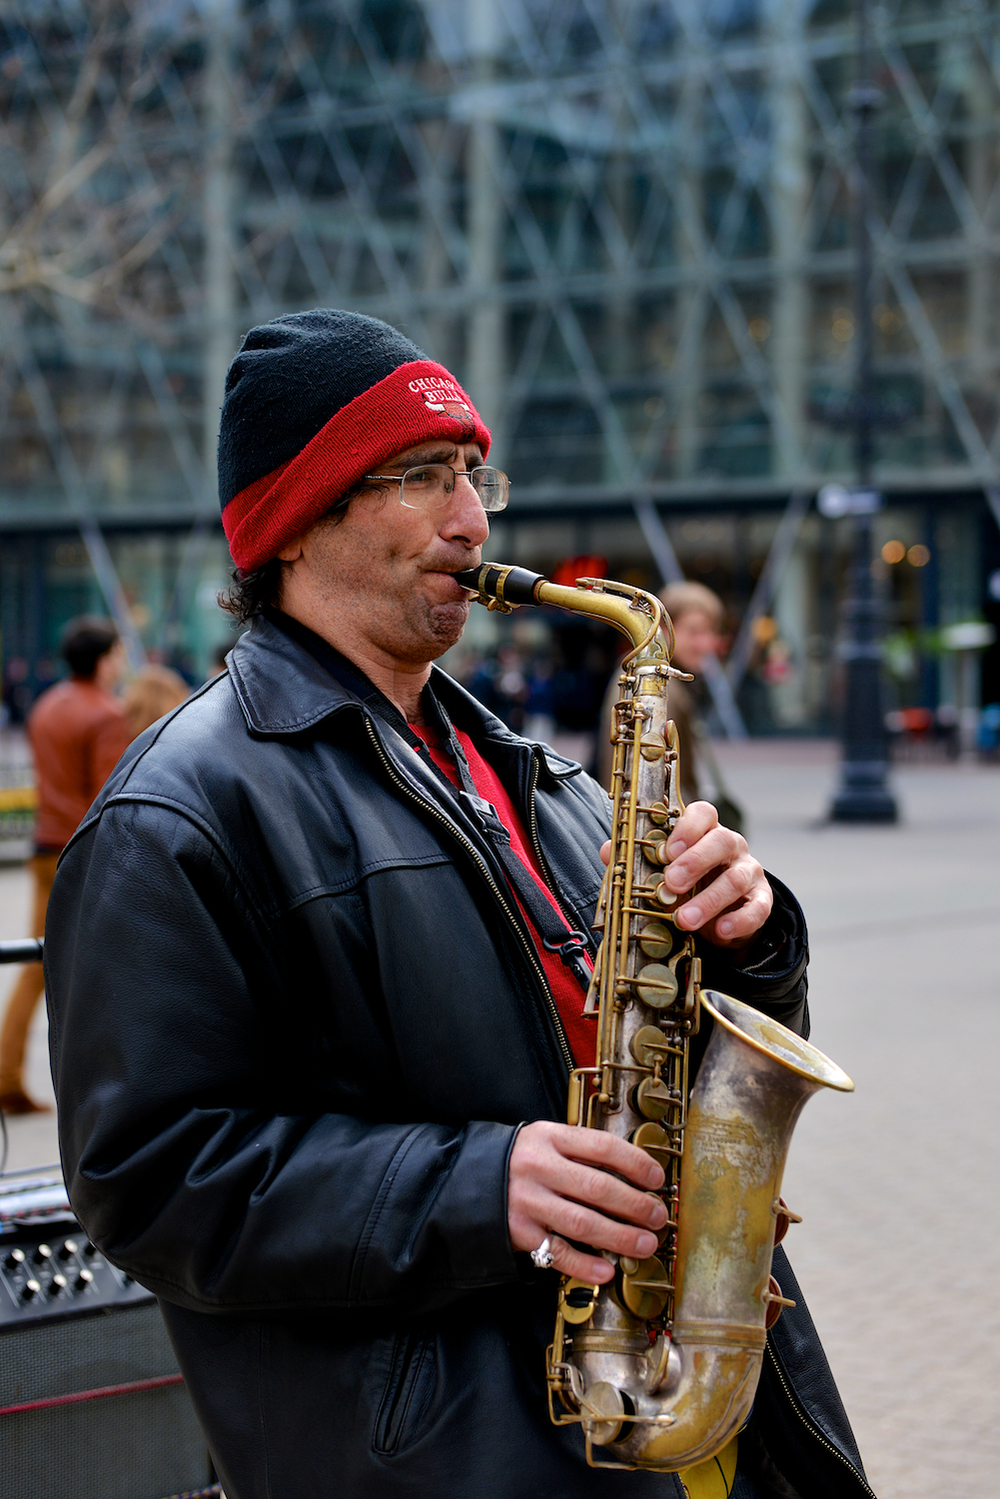 The Saxophone Player 03.jpg